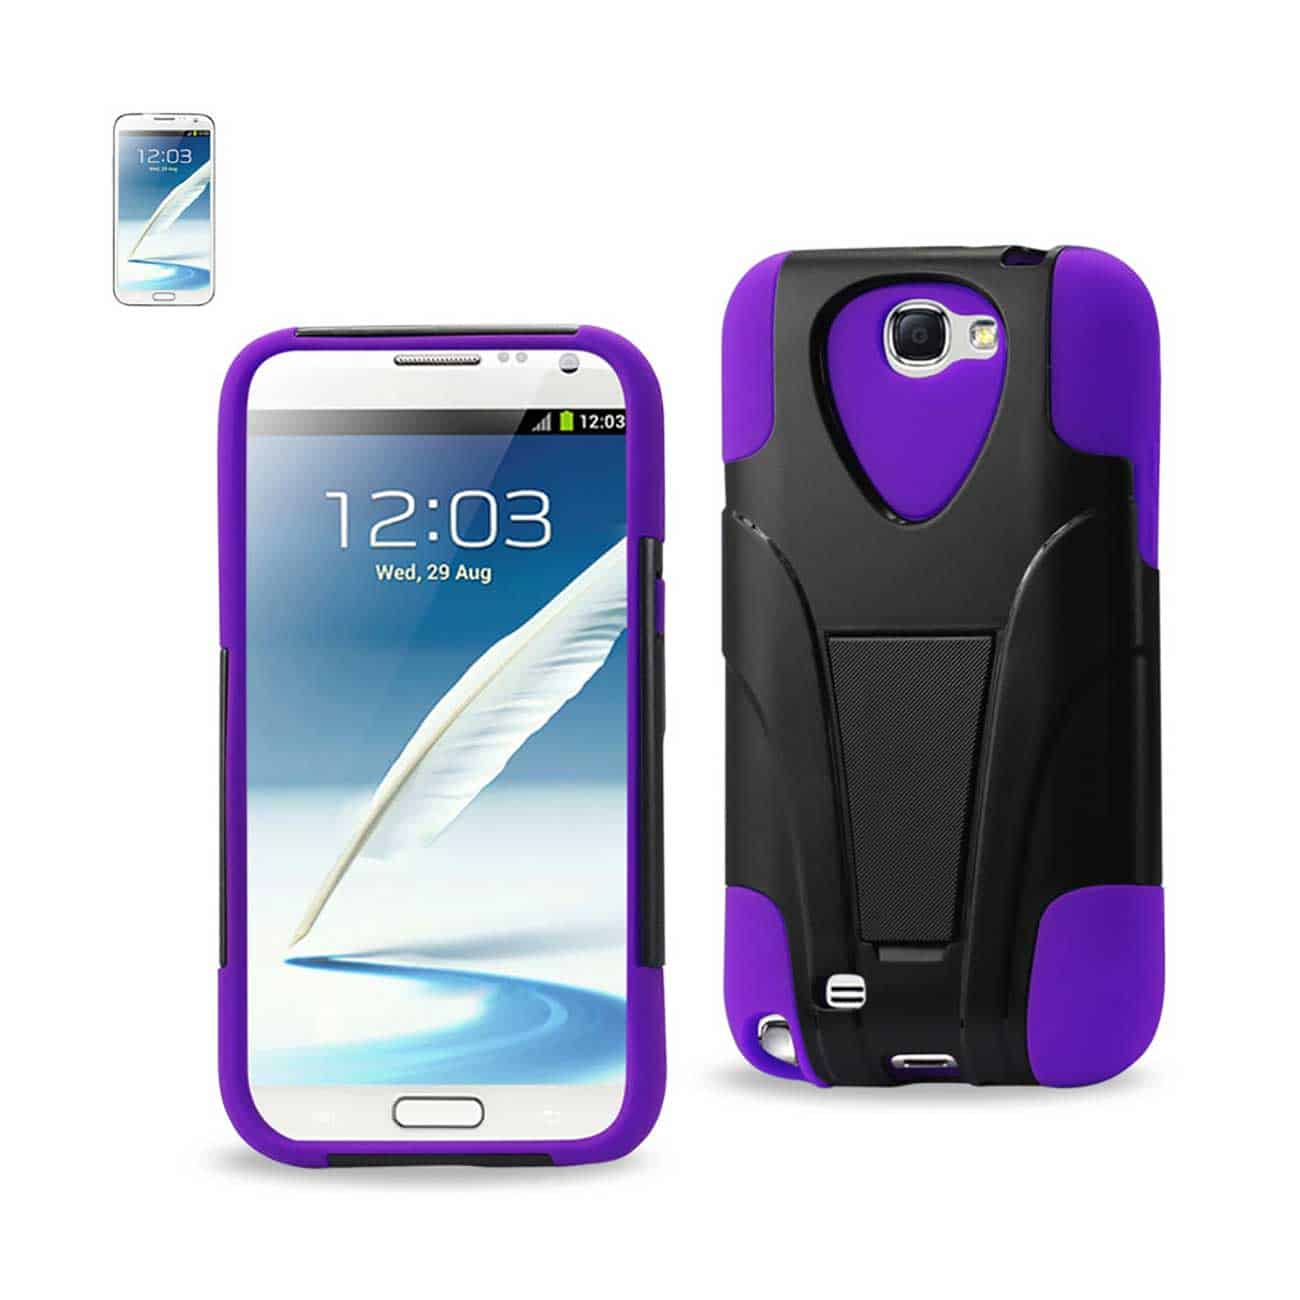 SAMSUNG GALAXY NOTE 2 HYBRID HEAVY DUTY CASE WITH KICKSTAND IN BLACK PURPLE